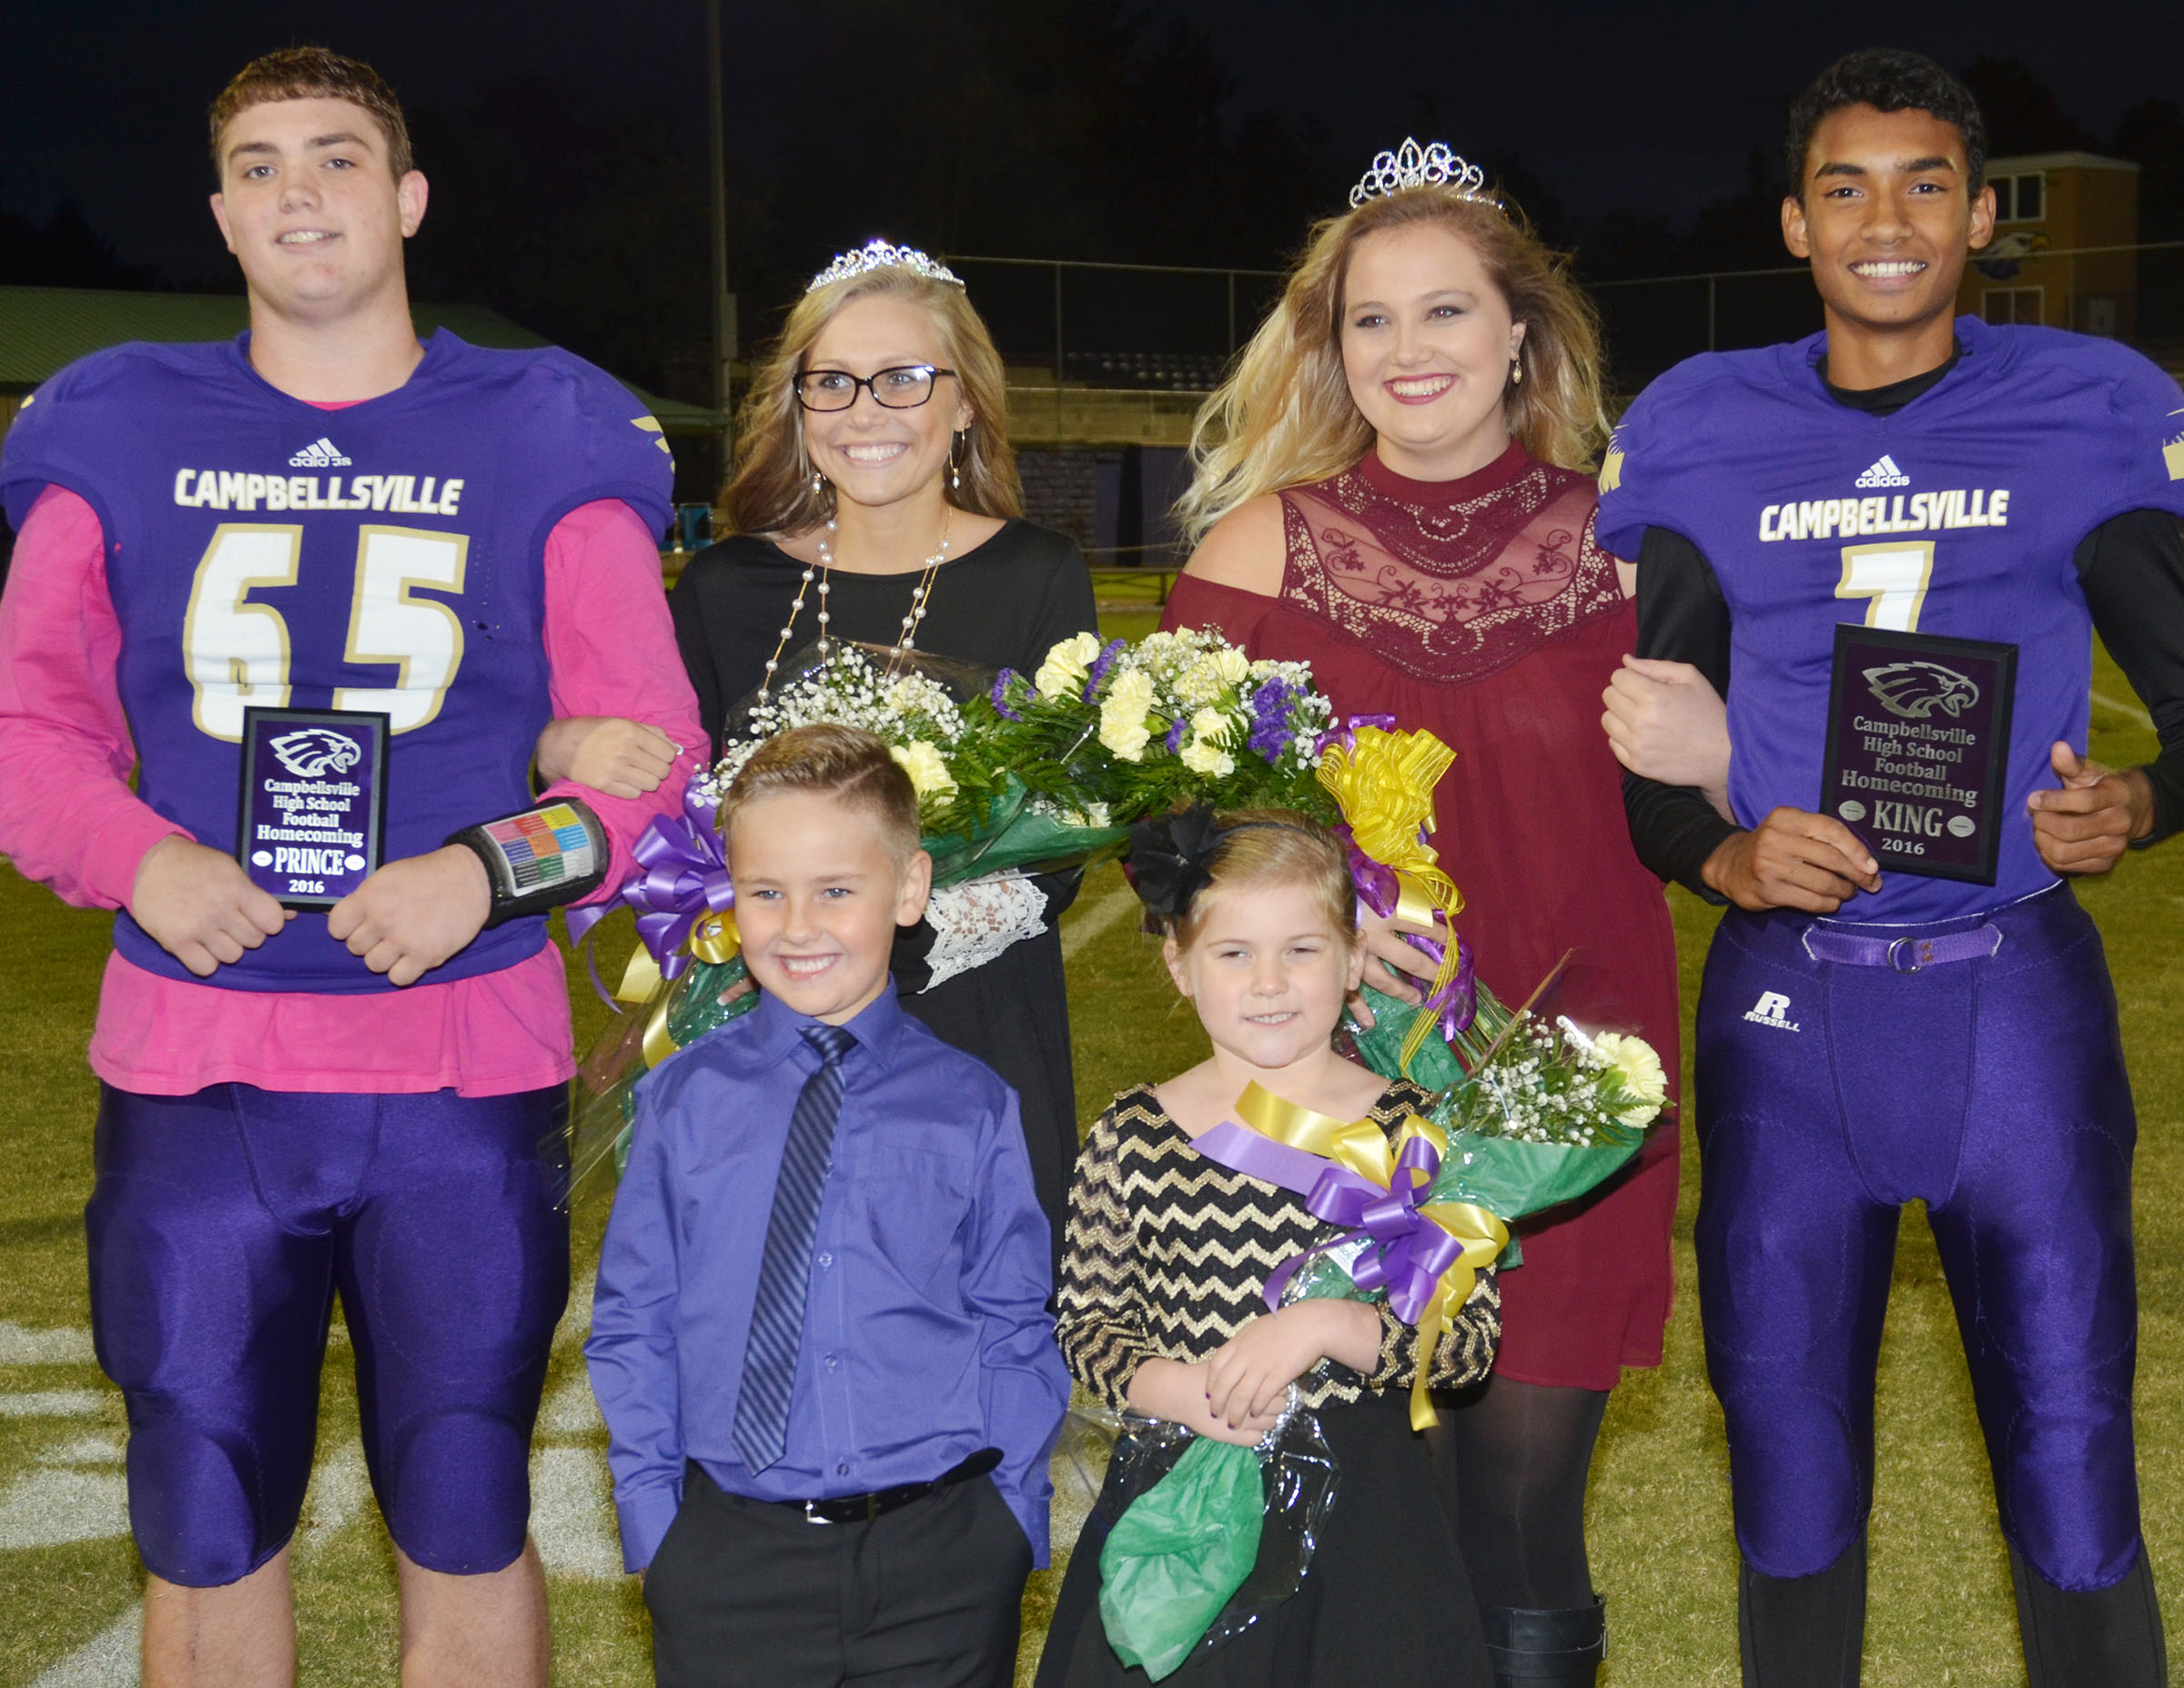 This year's CHS football homecoming court is, front, Campbellsville Elementary School kindergarteners Braxton Rhodes and Aubreigh Knifley, who served as crown bearers. Back, prince and princess Lane Bottoms and Tatem Wiseman, representing the sophomore class, at left, and king and queen Daniel Silva and Brenna Wethington from the senior class.